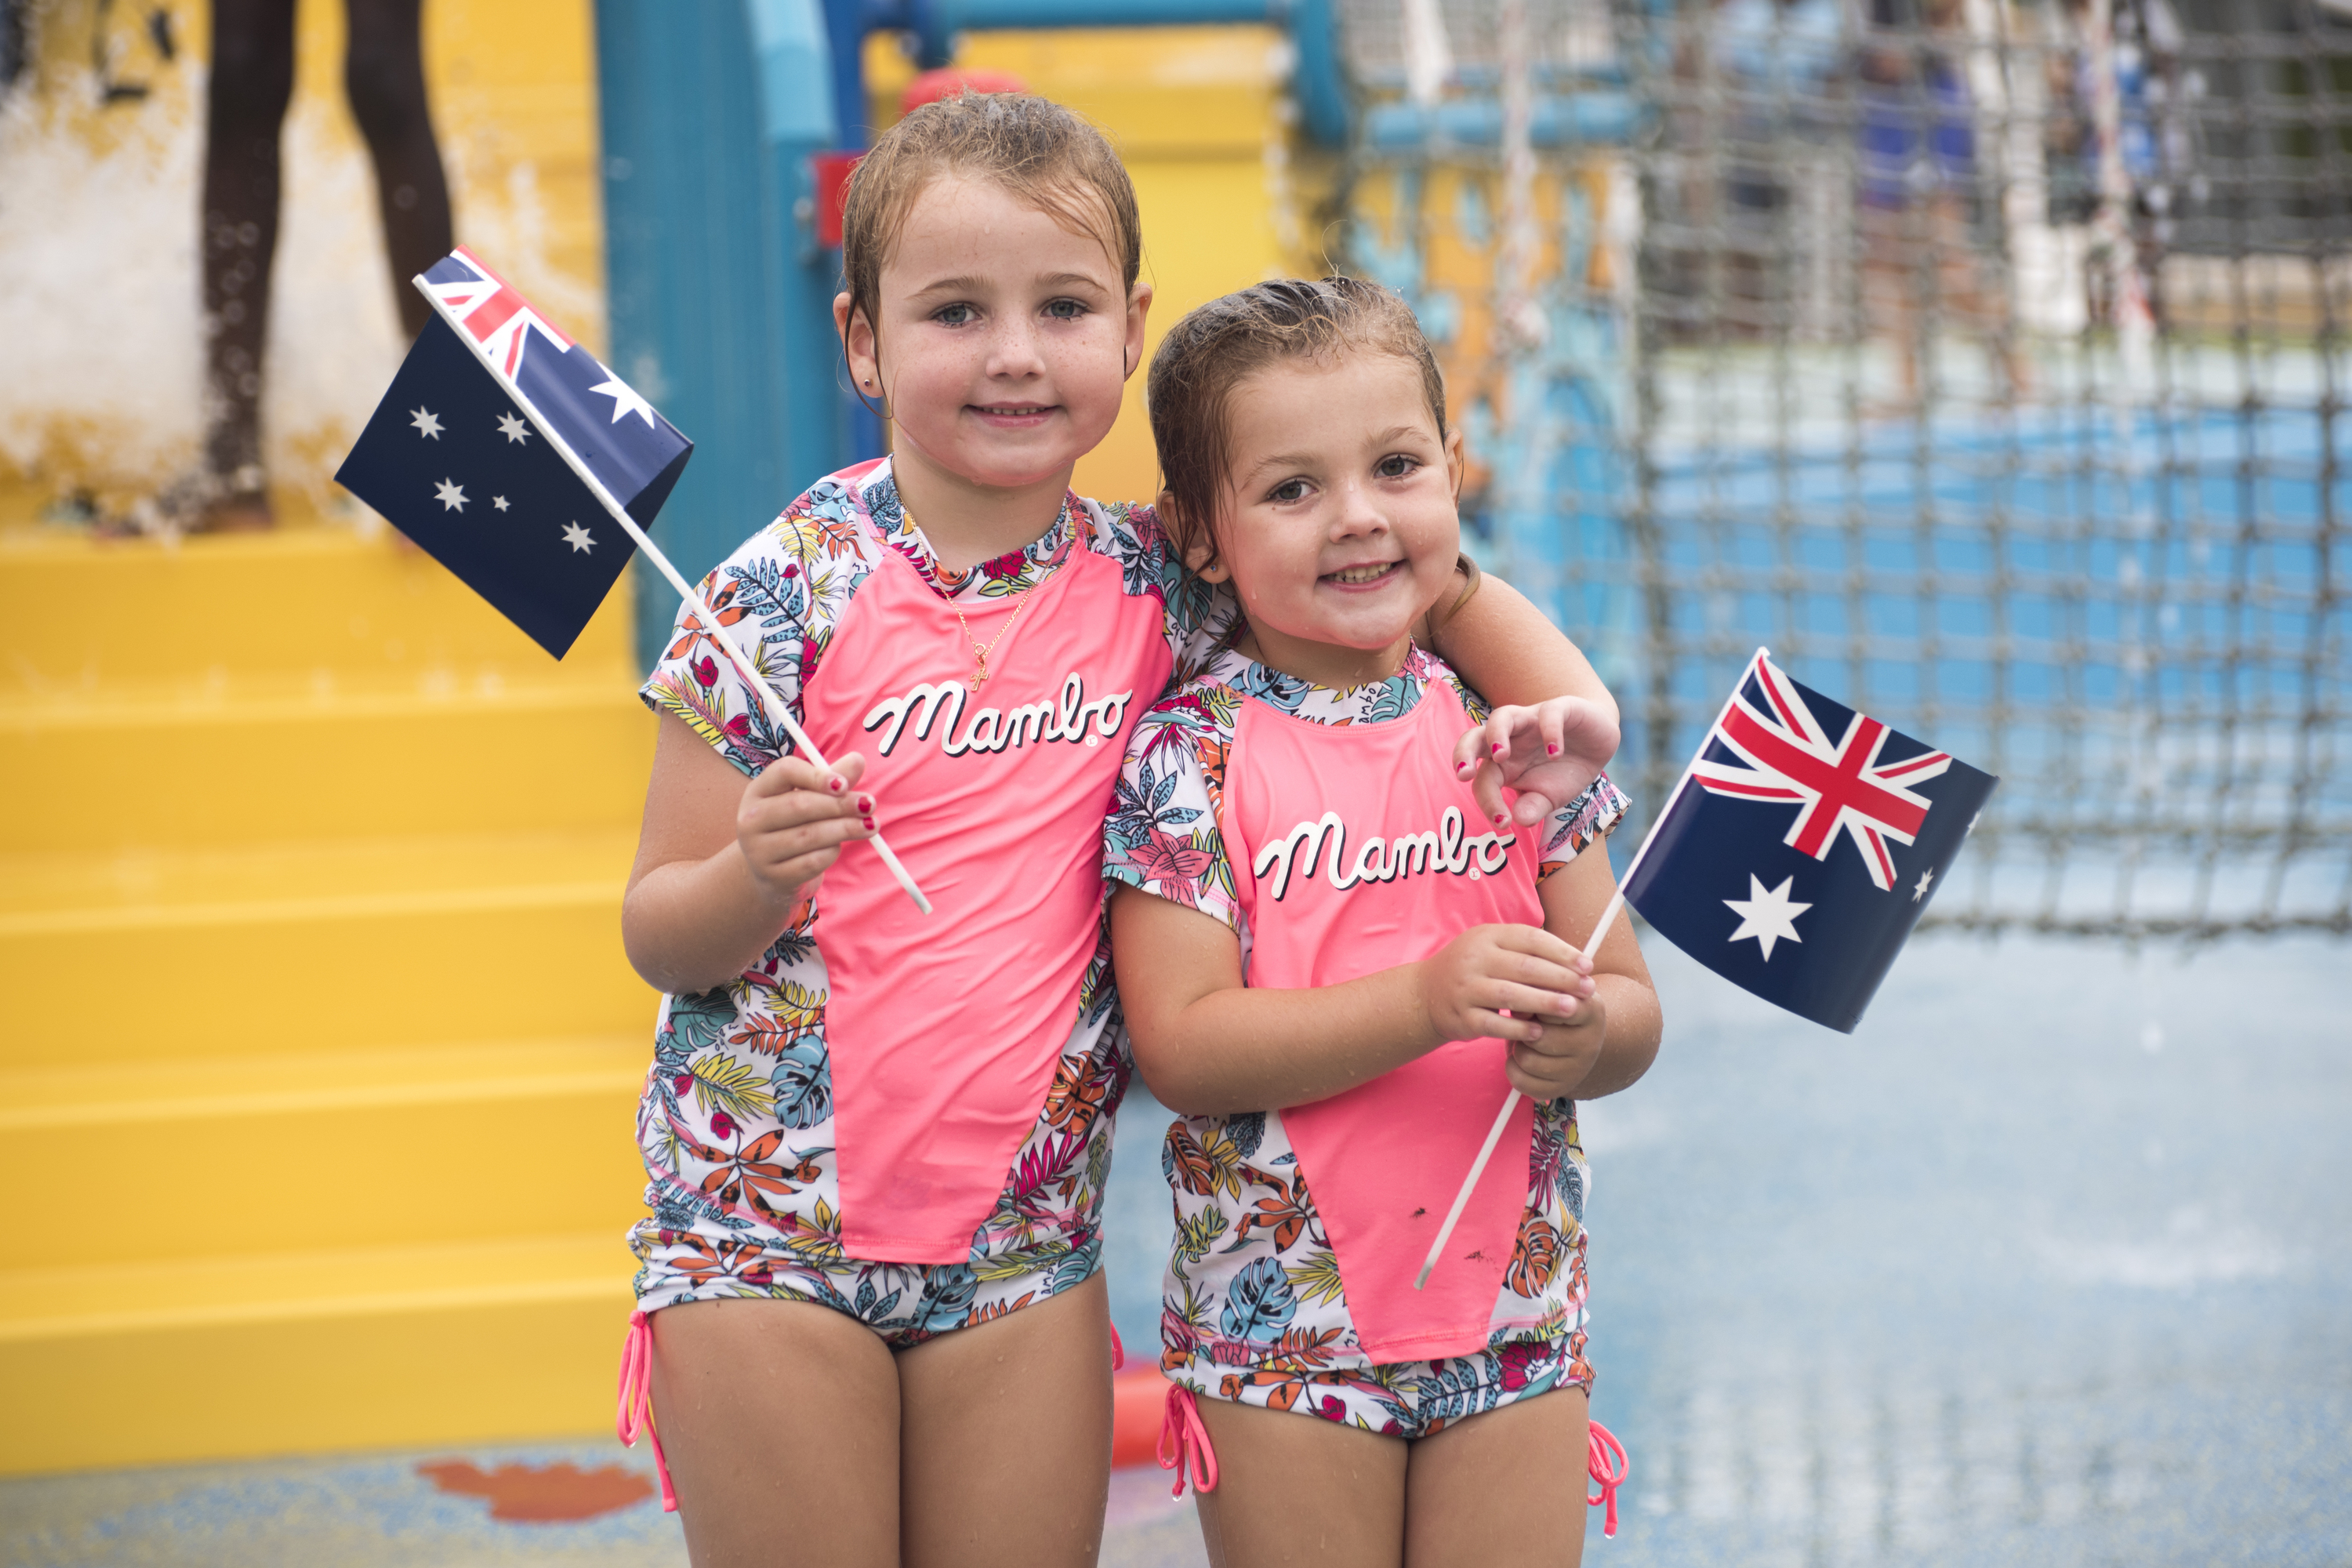 Kids in front of pool waving flags.